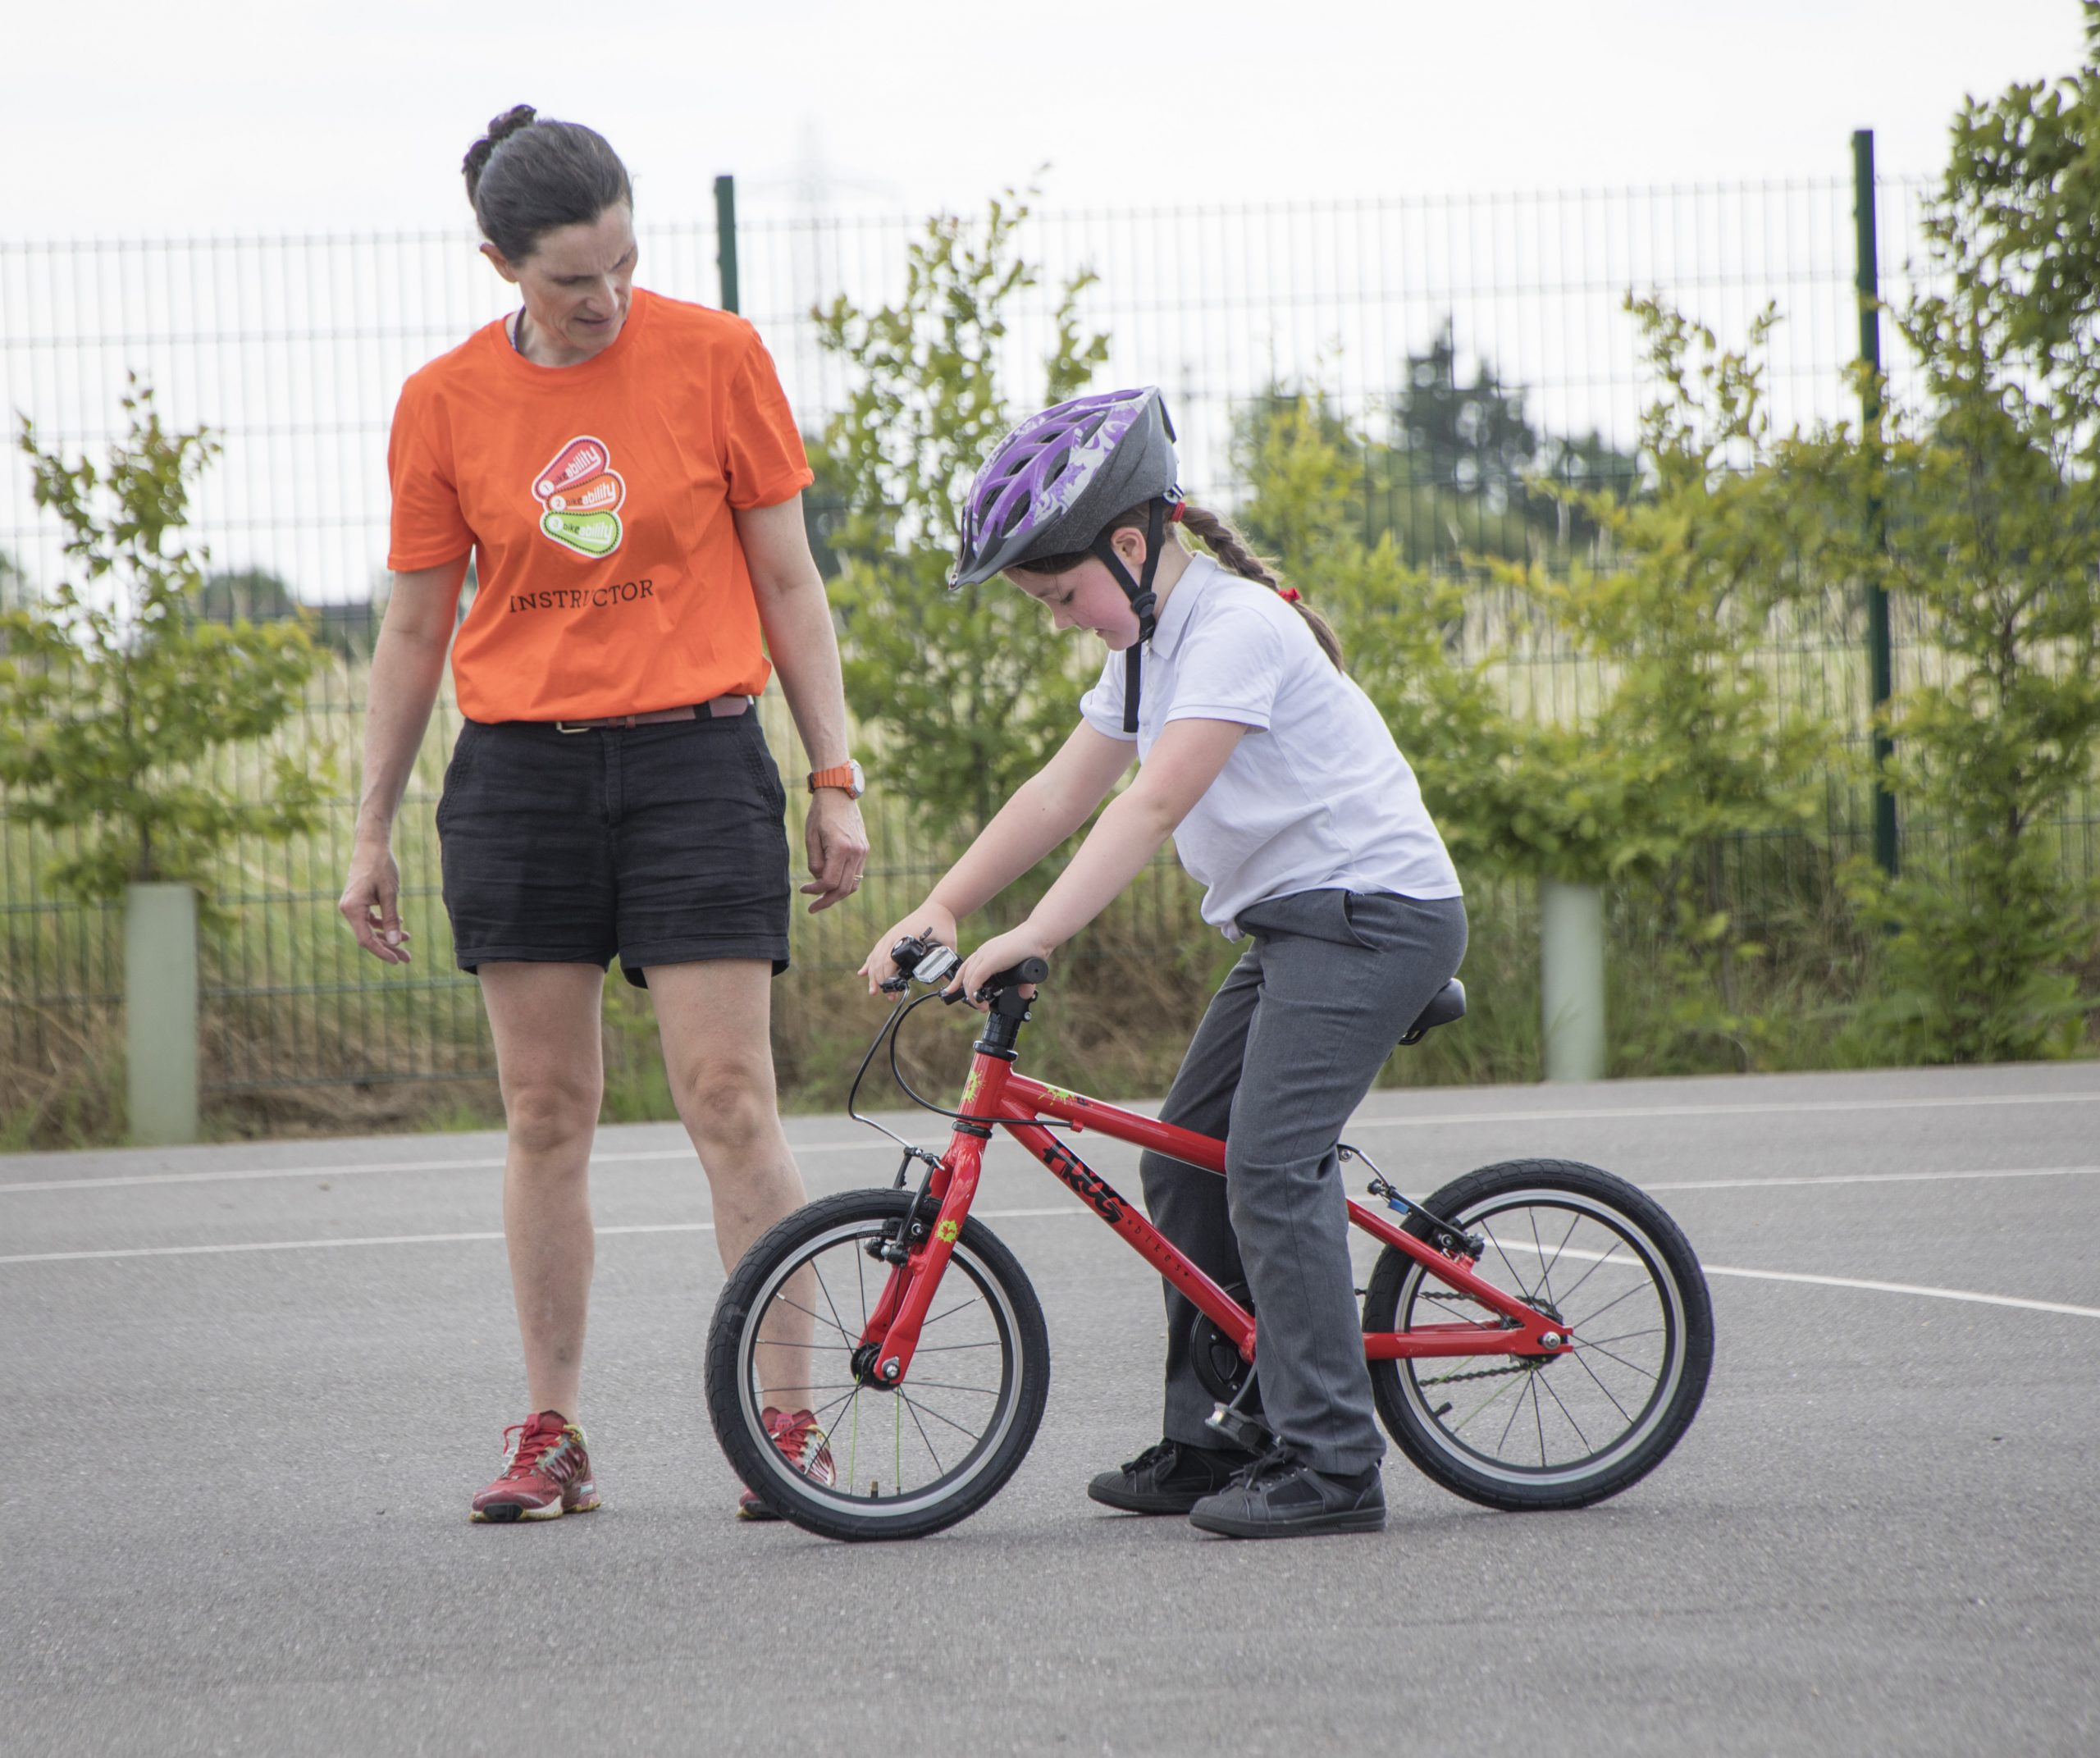 A female Bikeability instructor with a young girl on a bike